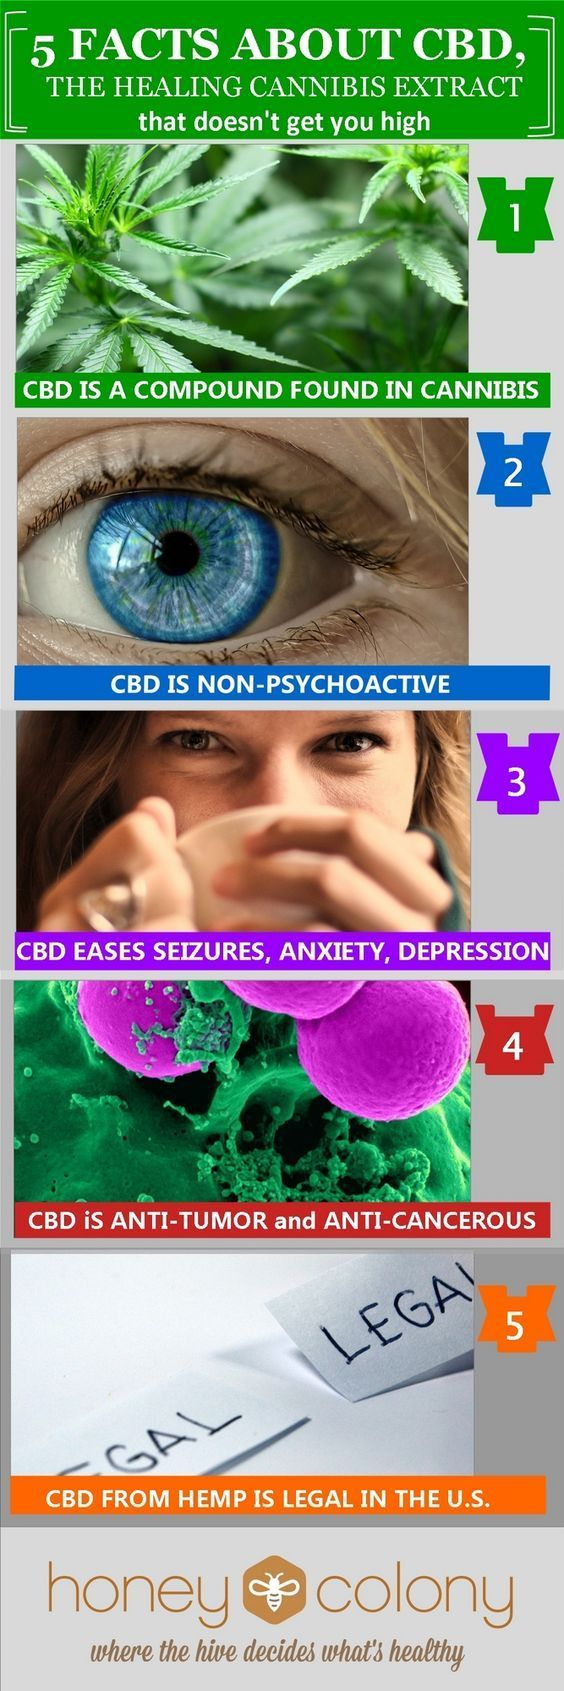 Healing Power of CBD OIL Cannabidiol, CBD, Benefits for Pain, Mental Illness & Anxiety and more… CBD OIL BENEFITS LIST - It Combats Tumor & Cancer Cells, Anxiety, Seizures, Pain Relief, Depression disorders, psychosis disorders, Inflammatory Disorders & http://www.easybodyfit.com/cbd-oil-benefits-list/